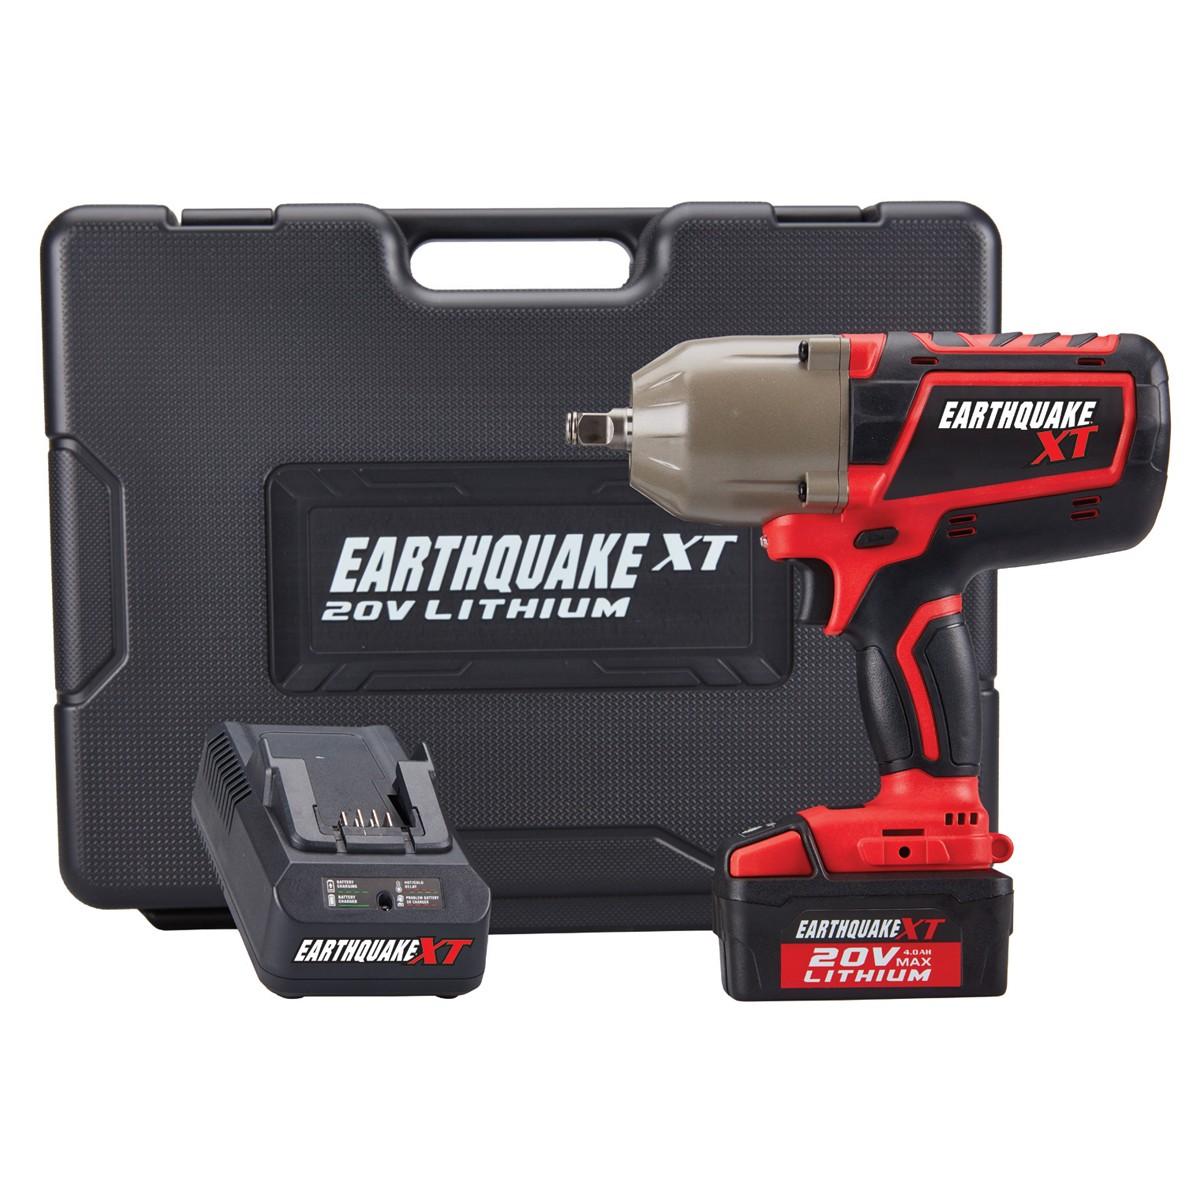 Earthquake Impact Wrench Pictures to Pin on Pinterest ...